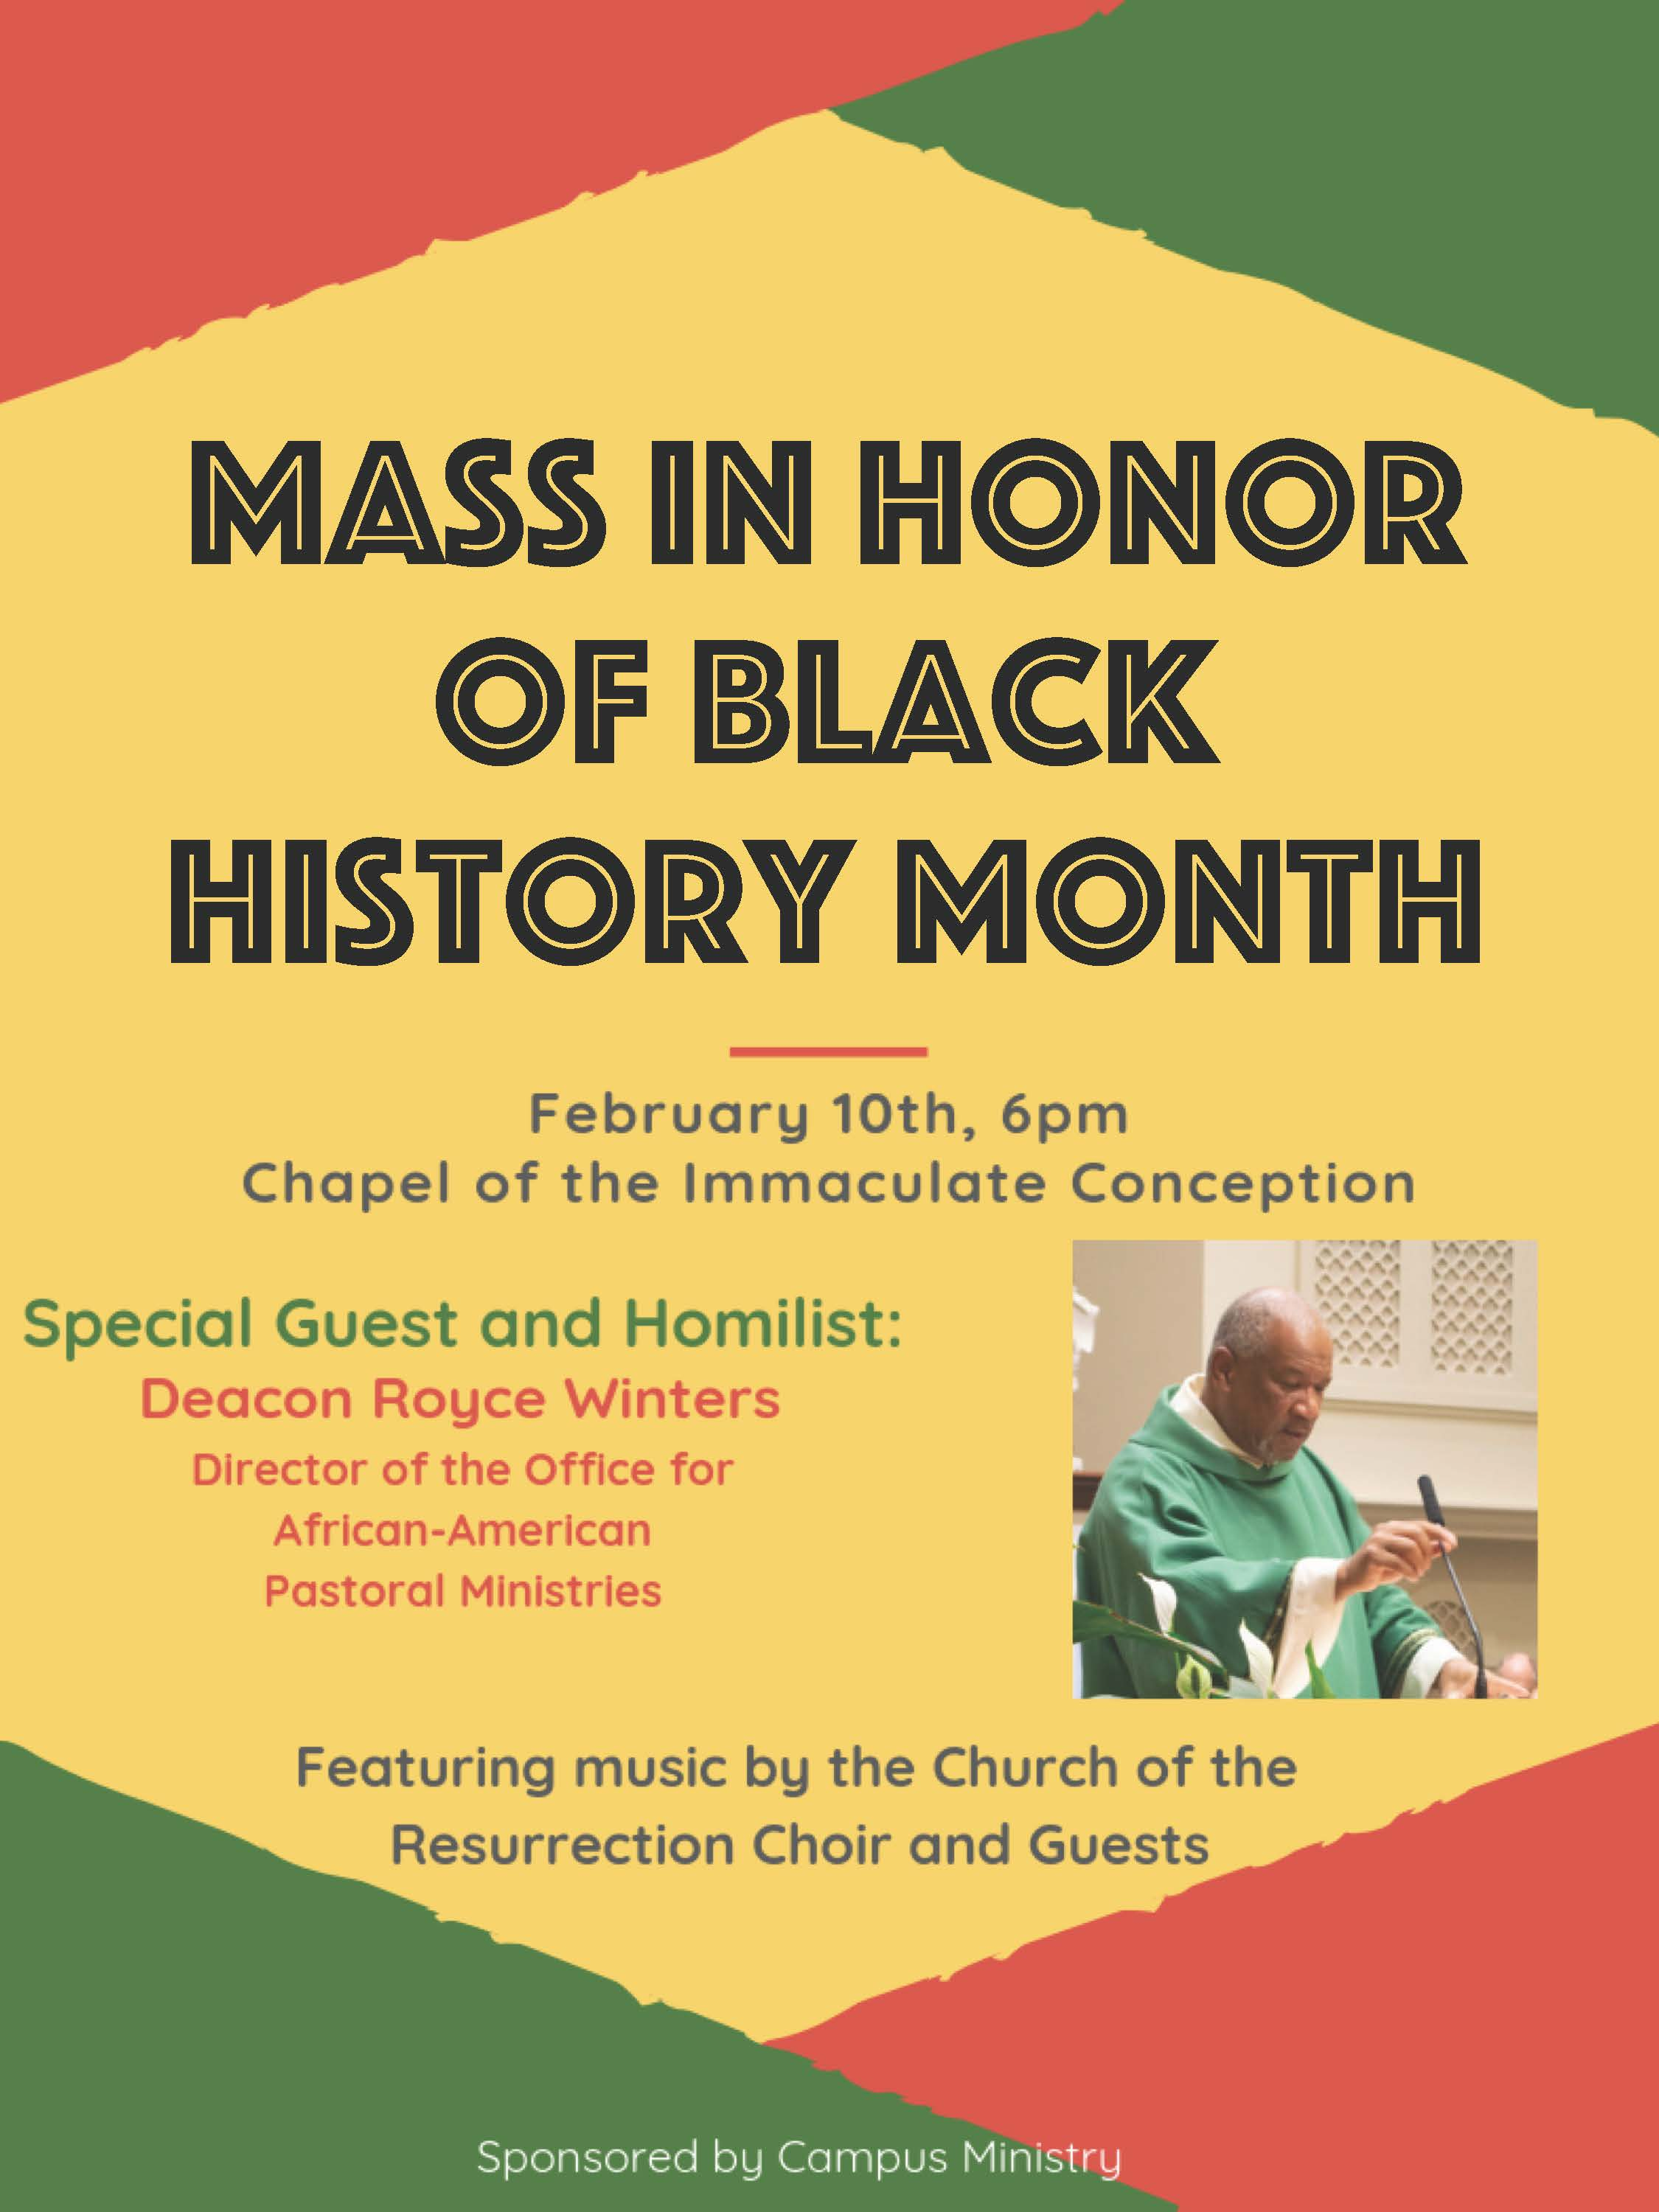 MASS FOR BLACK HISTORY MONTH